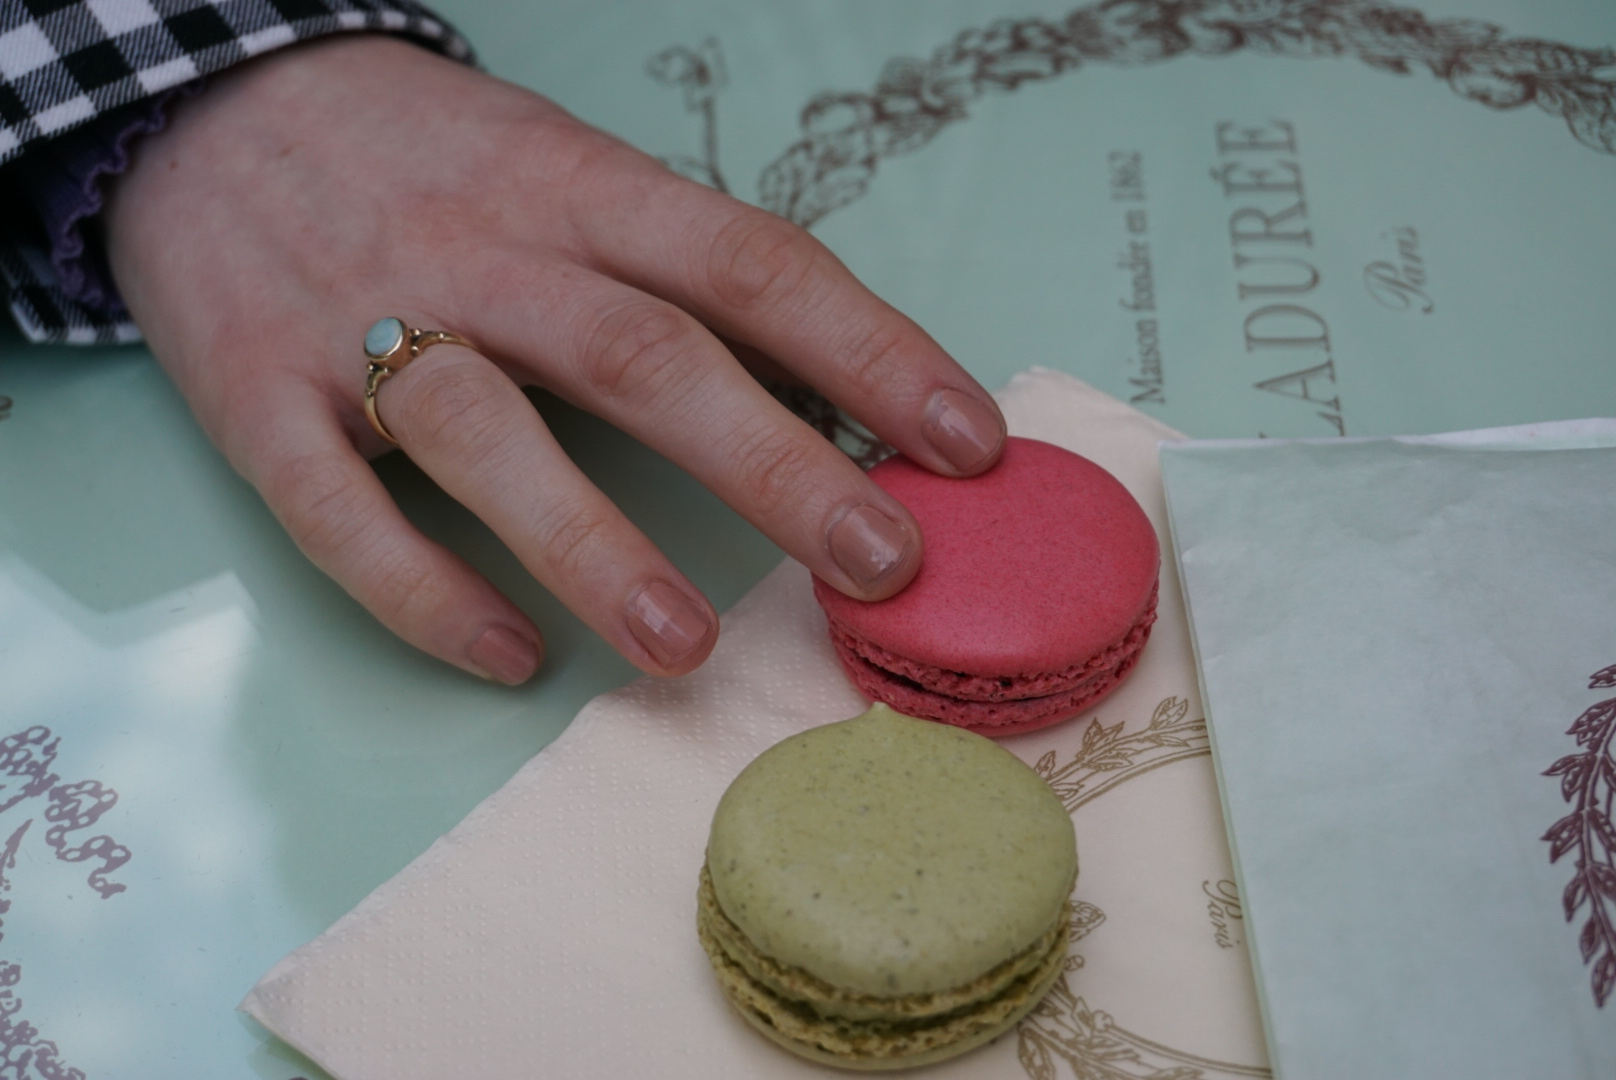 Pit-stopping at Ladurée on Rue d'Antibes